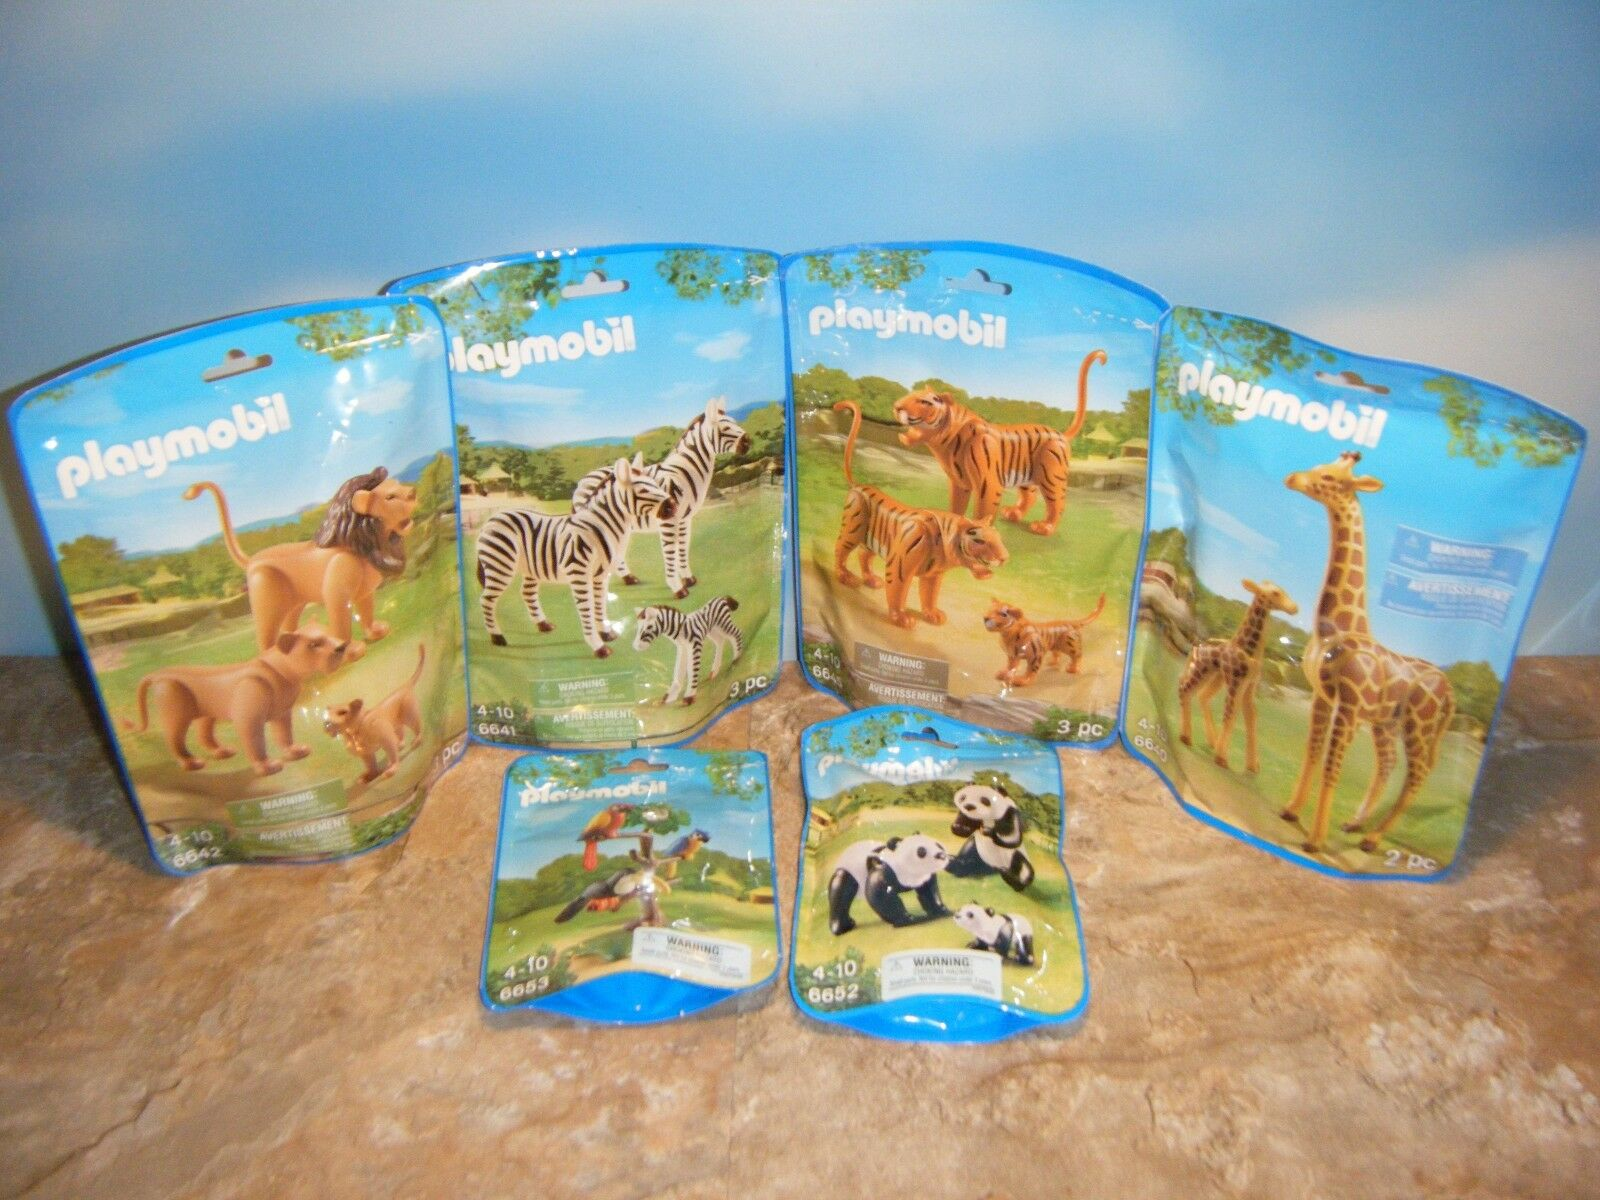 Playmobil girafe 6640 Zebra 6641 Lion 6642 Tiger 6645 Panda 6652 TUCAN 6653 Lot